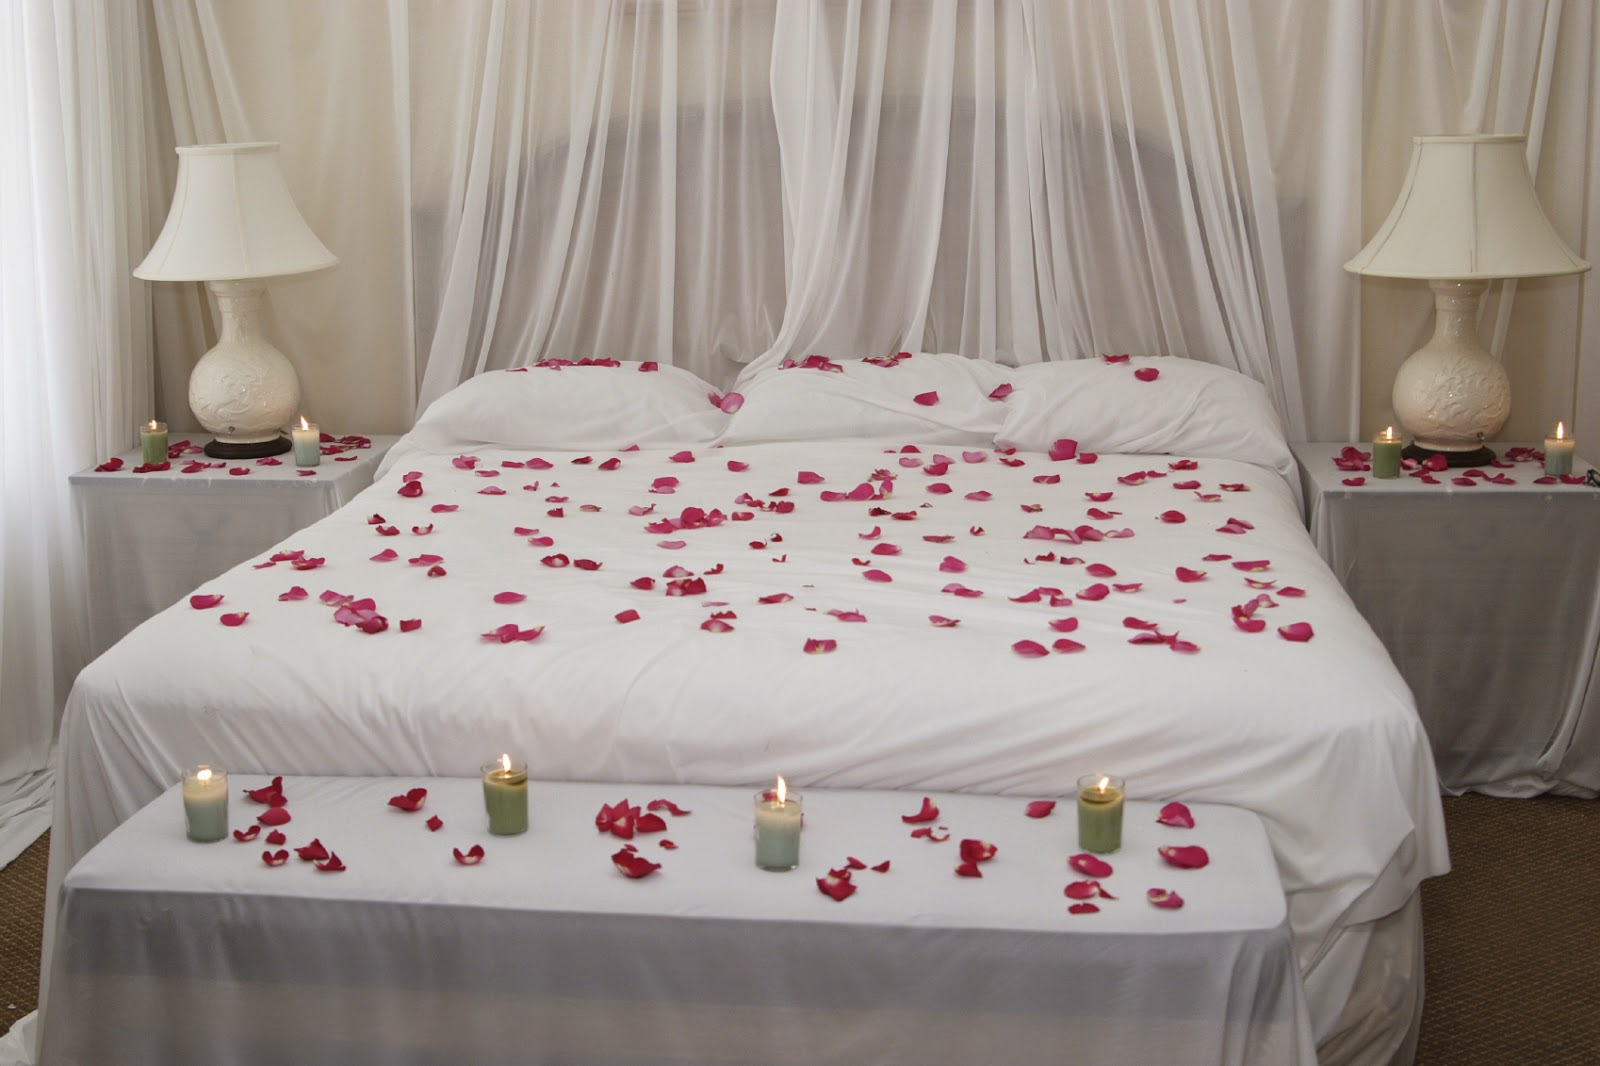 Decorate Hotel Room Romantic. Free Valentines Day Door Decorations R ...